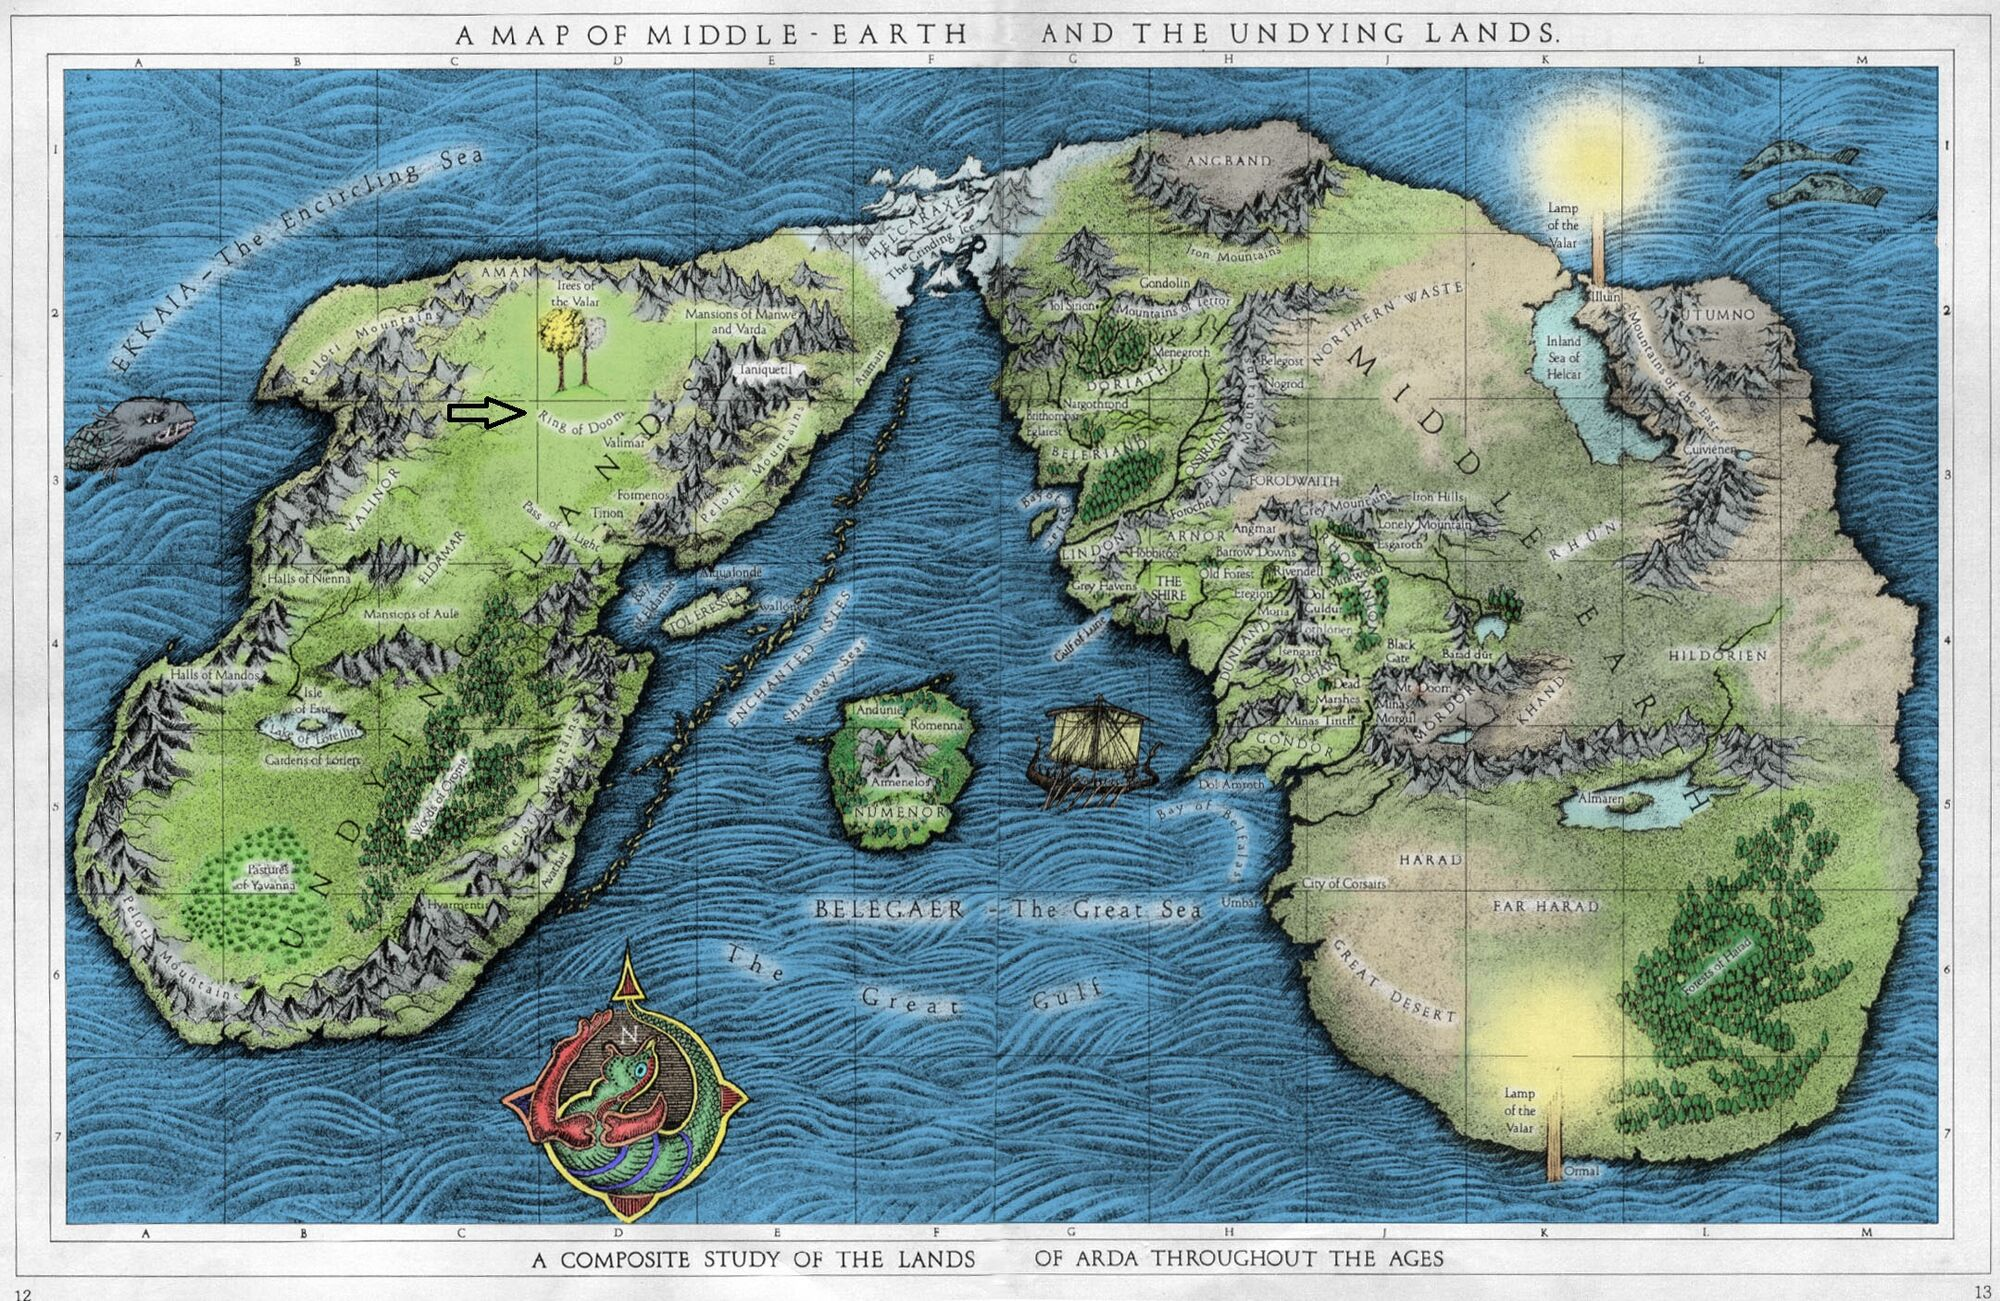 image  a map of middleearth and the undying lands color  the lord ofthe rings minecraft mod wiki  fandom powered by wikia. image  a map of middleearth and the undying lands color